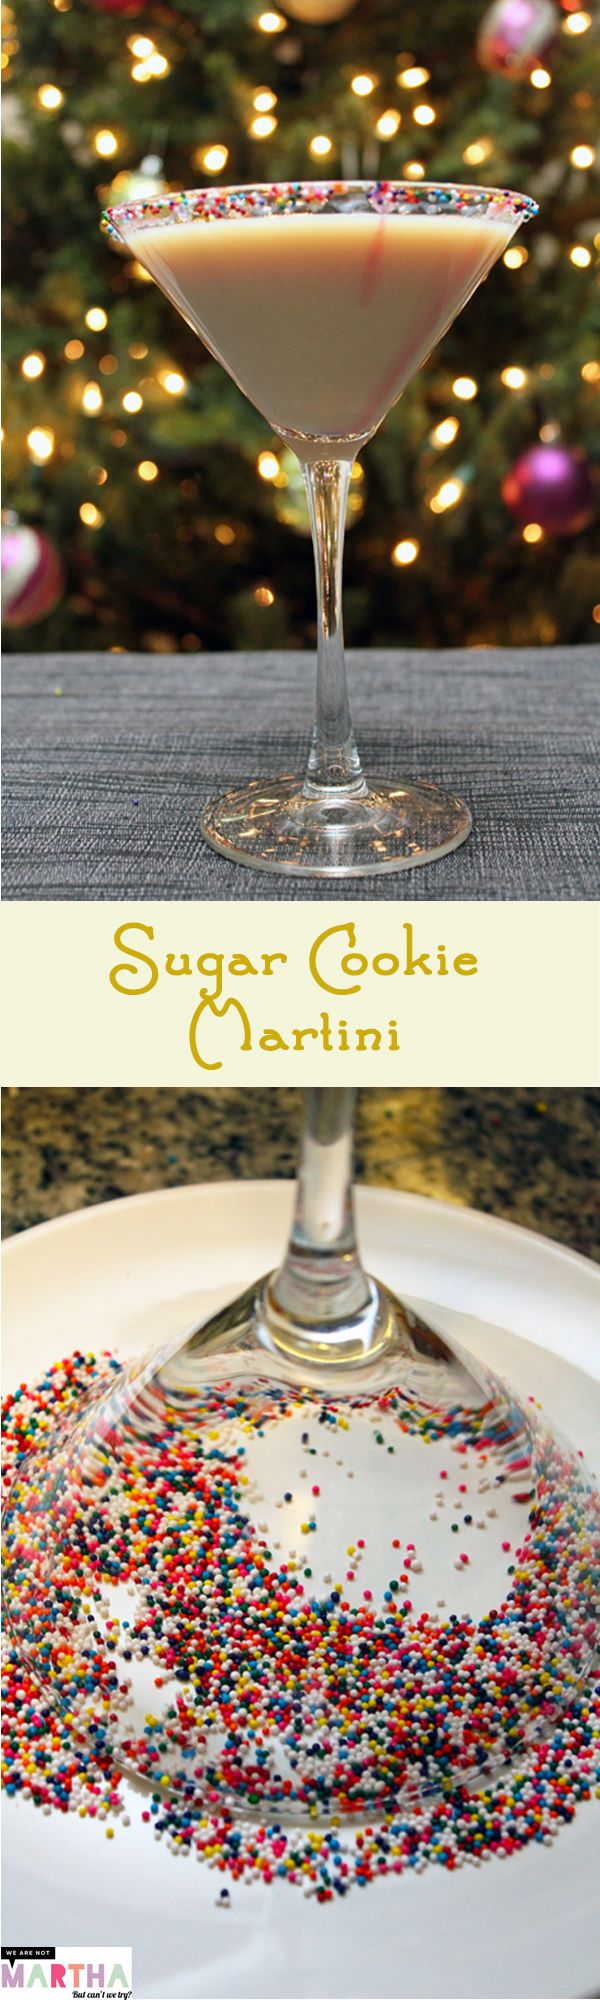 Sugar cookie Martini recipe:  (makes 2) •6 oz. vodka, •3 oz. butterscotch schnapps, •3 oz. milk, •Sprinkles for decorating rim